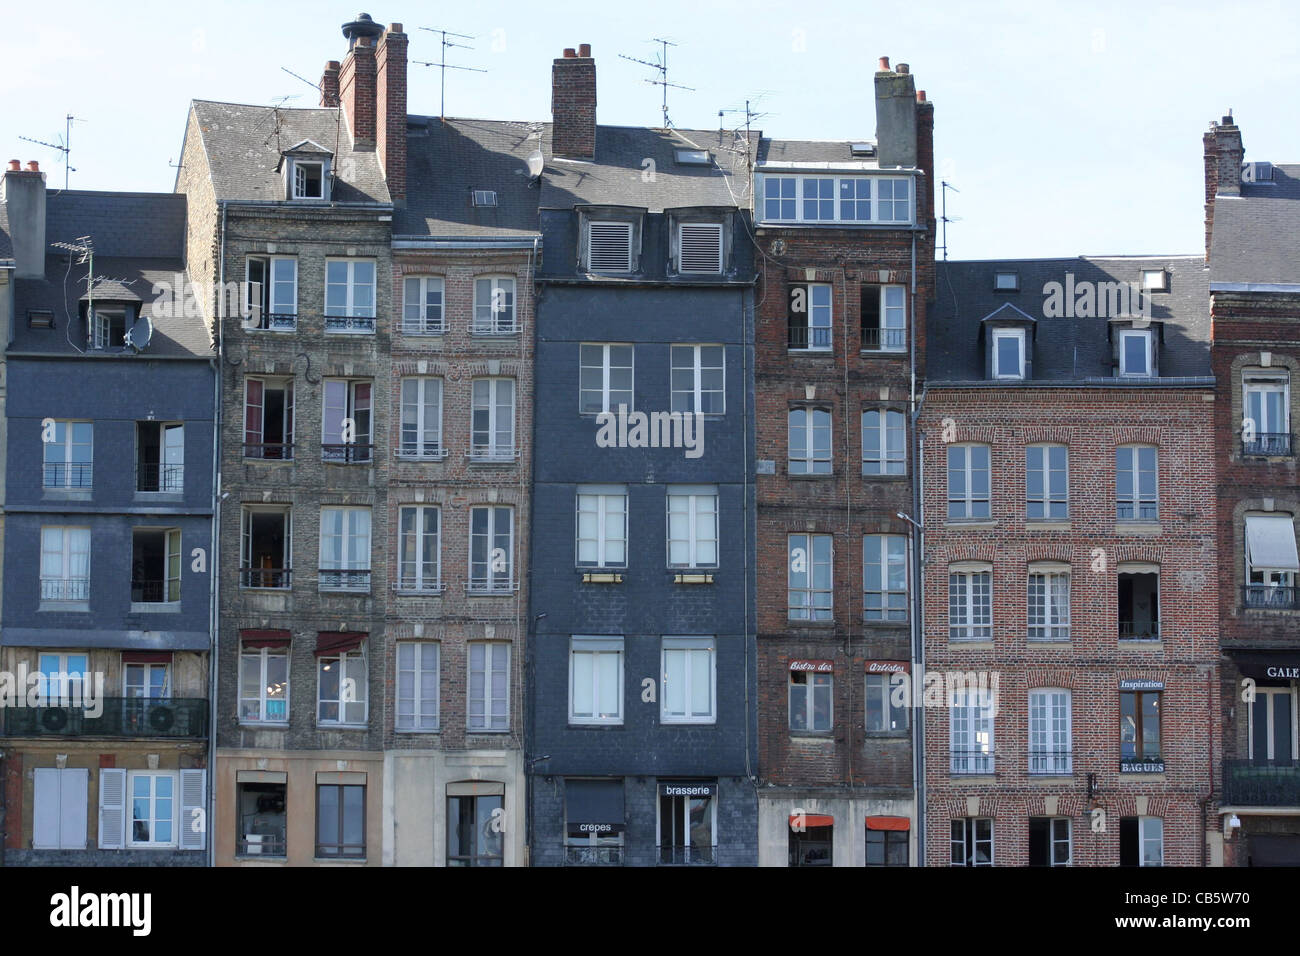 View of the port in Honfleur, Normandy, France. Houses with typical style, and old windows, boats, see - Stock Image